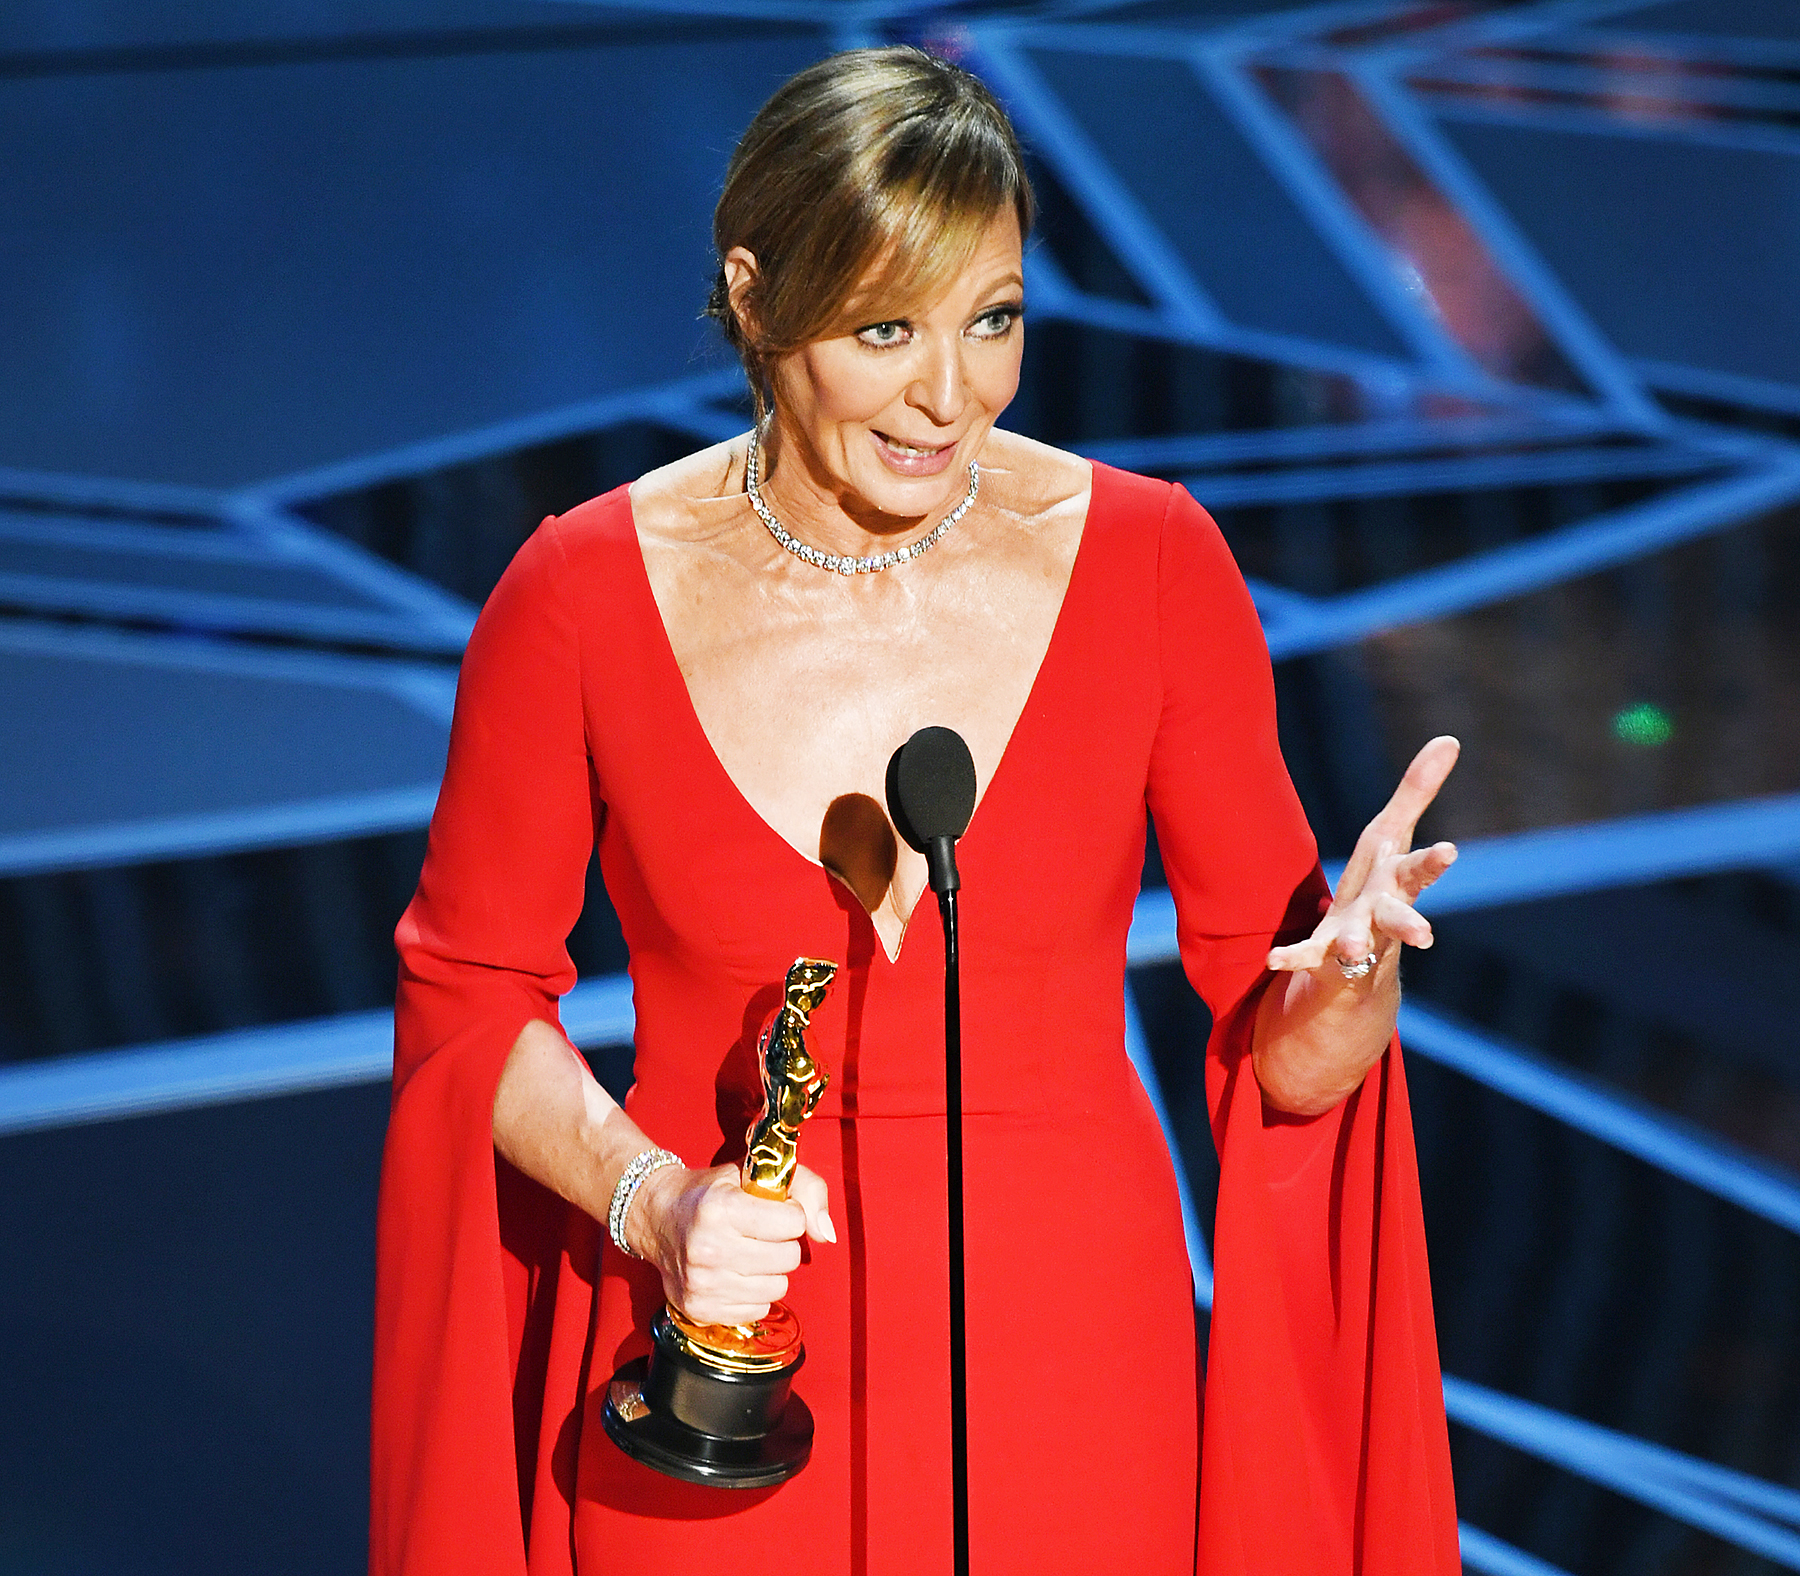 Allison Janney Best Supporting Actress Oscars 2018